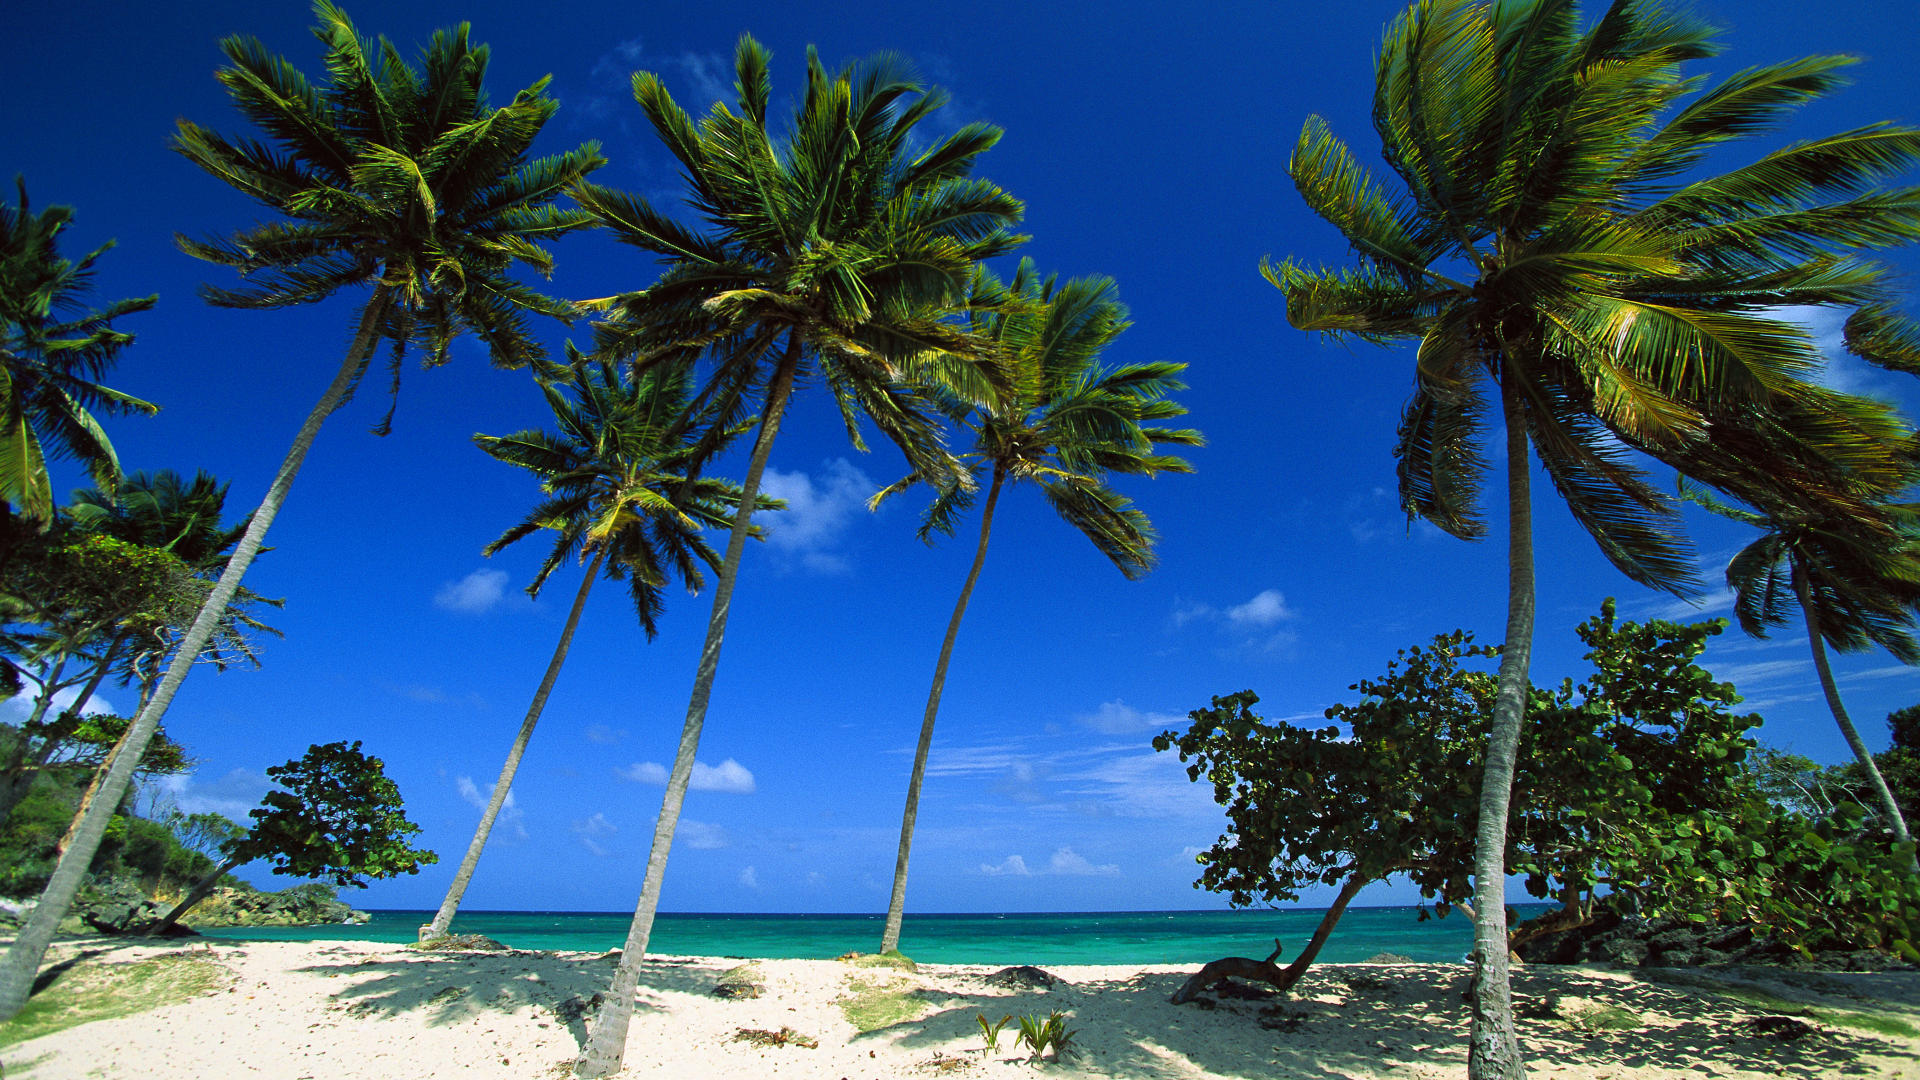 Dominican wallpapers wallpapersafari - Wallpaper dominican republic ...